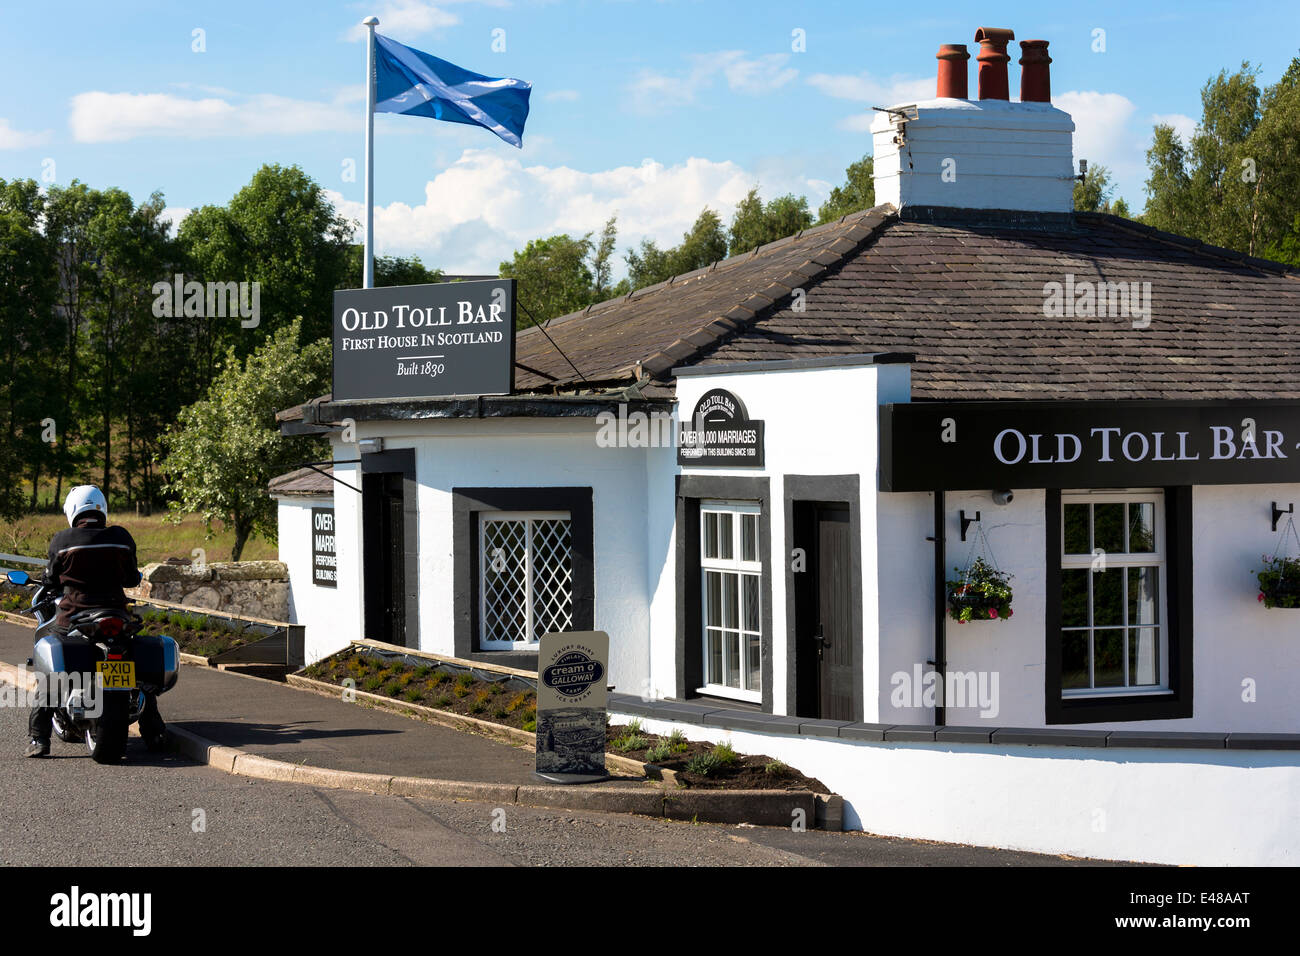 Scottish flag, the Saltire, on the First House in Scotland on the Scottish/English border at Gretna - Stock Image